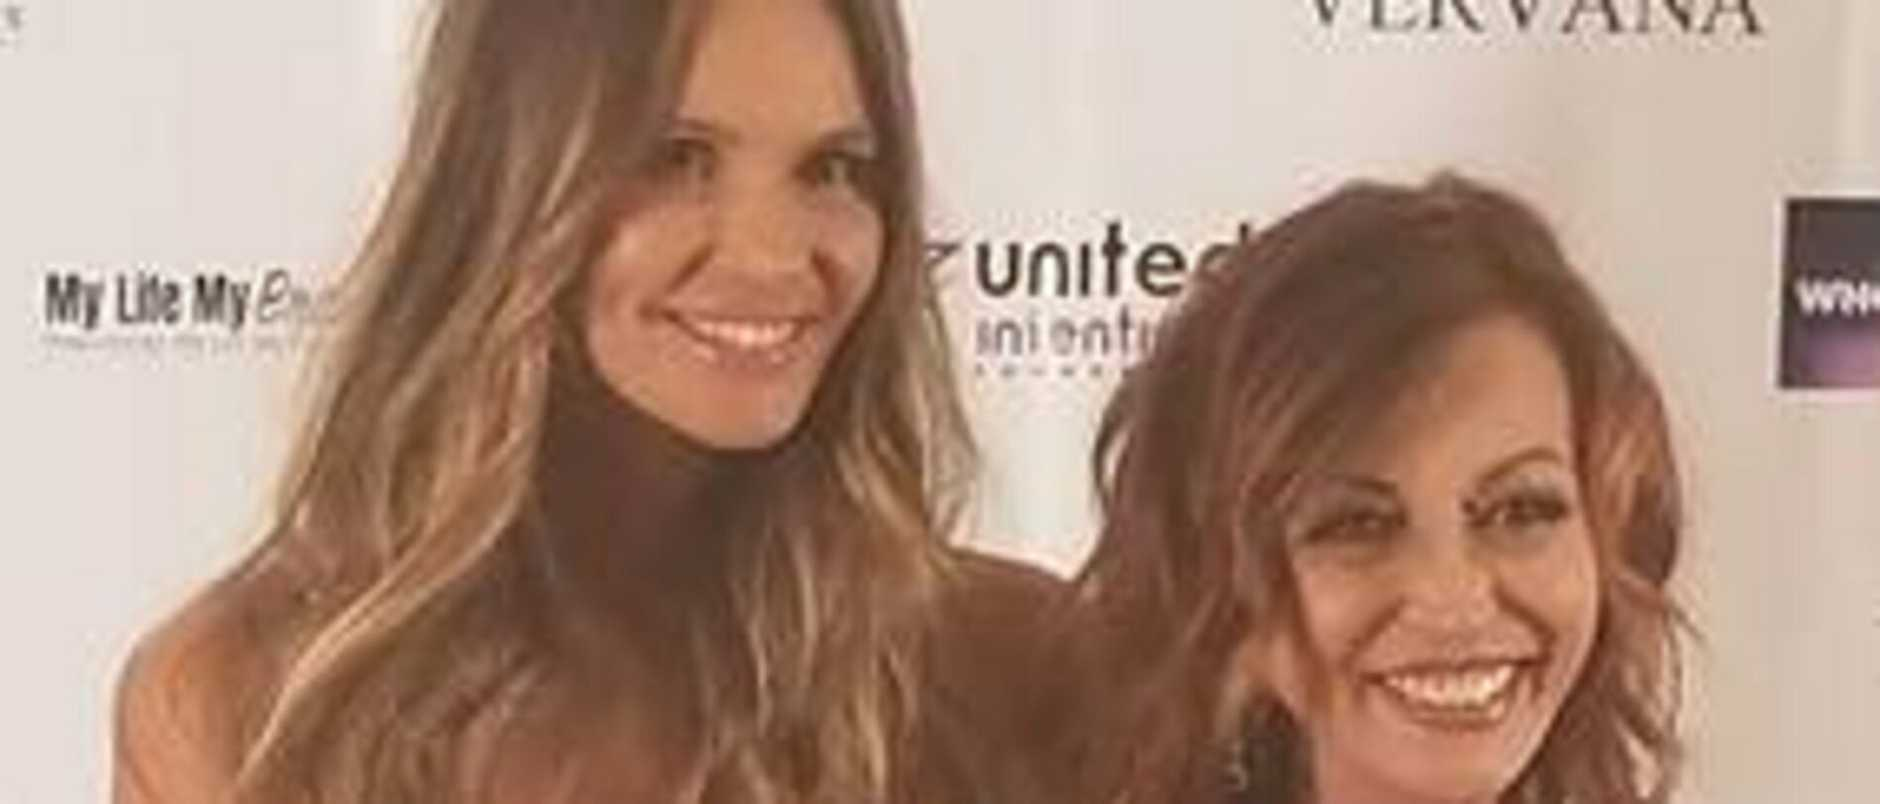 Elle Macpherson appears at the 2017 Doctors Who Rocks Awards as a Very Special Guest.